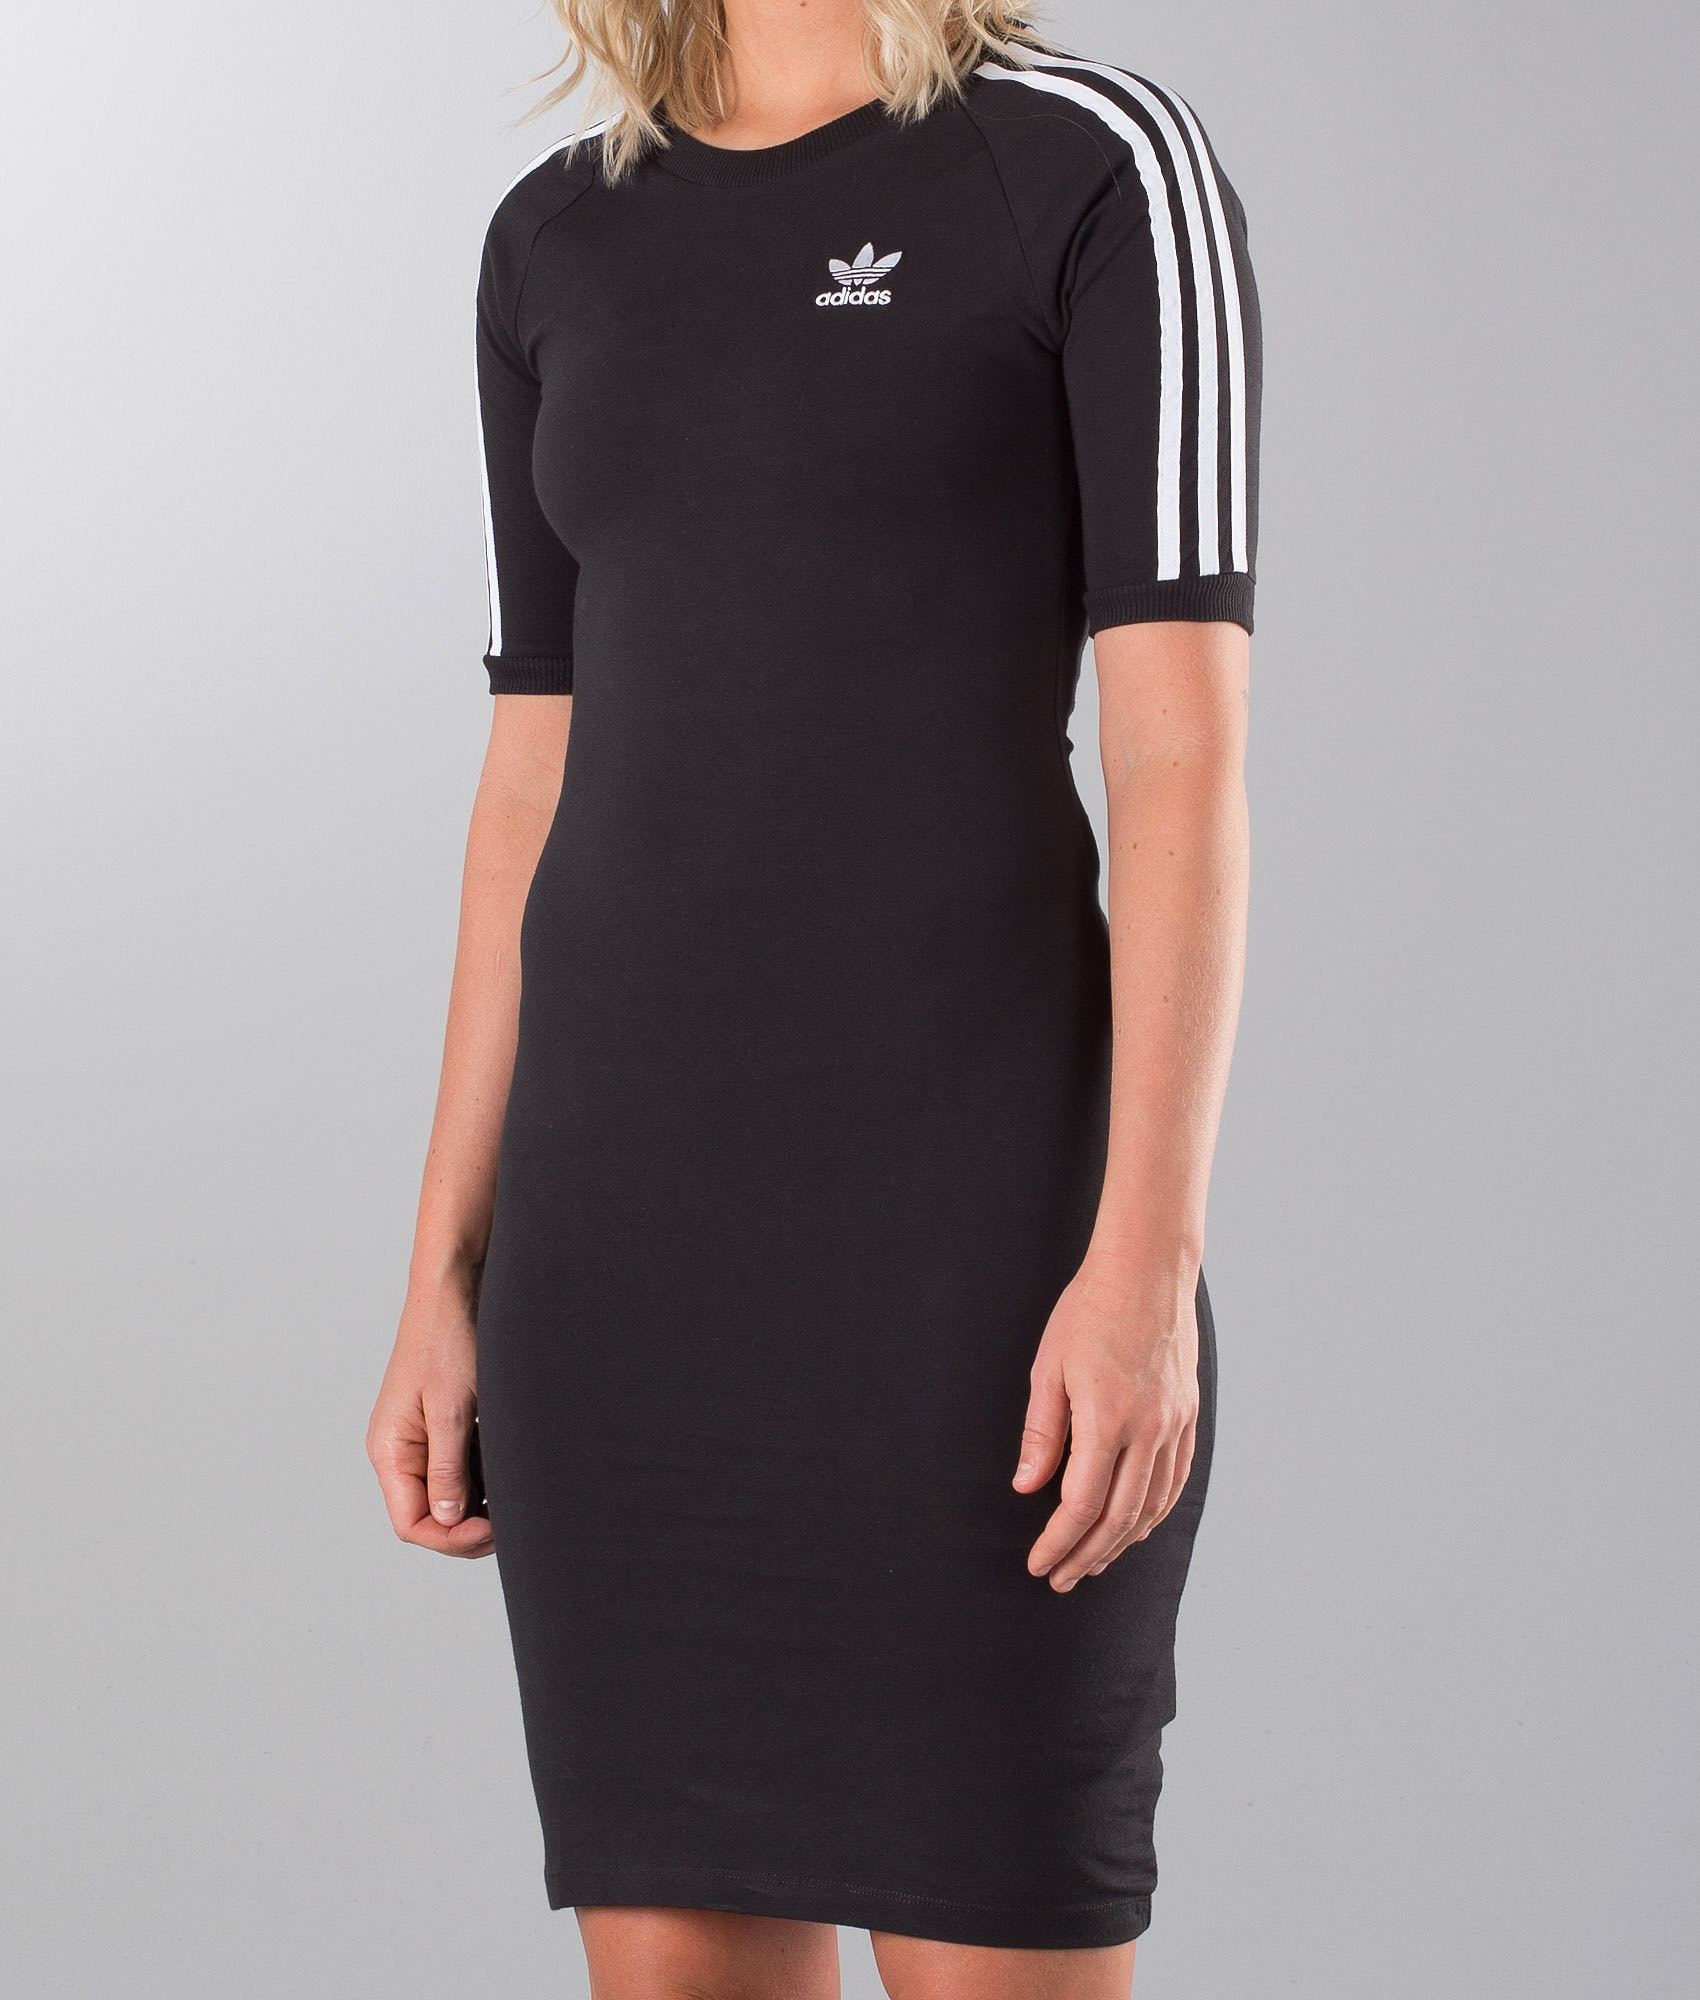 86a424b5 Adidas Originals 3 Stripes Dress Dress Black